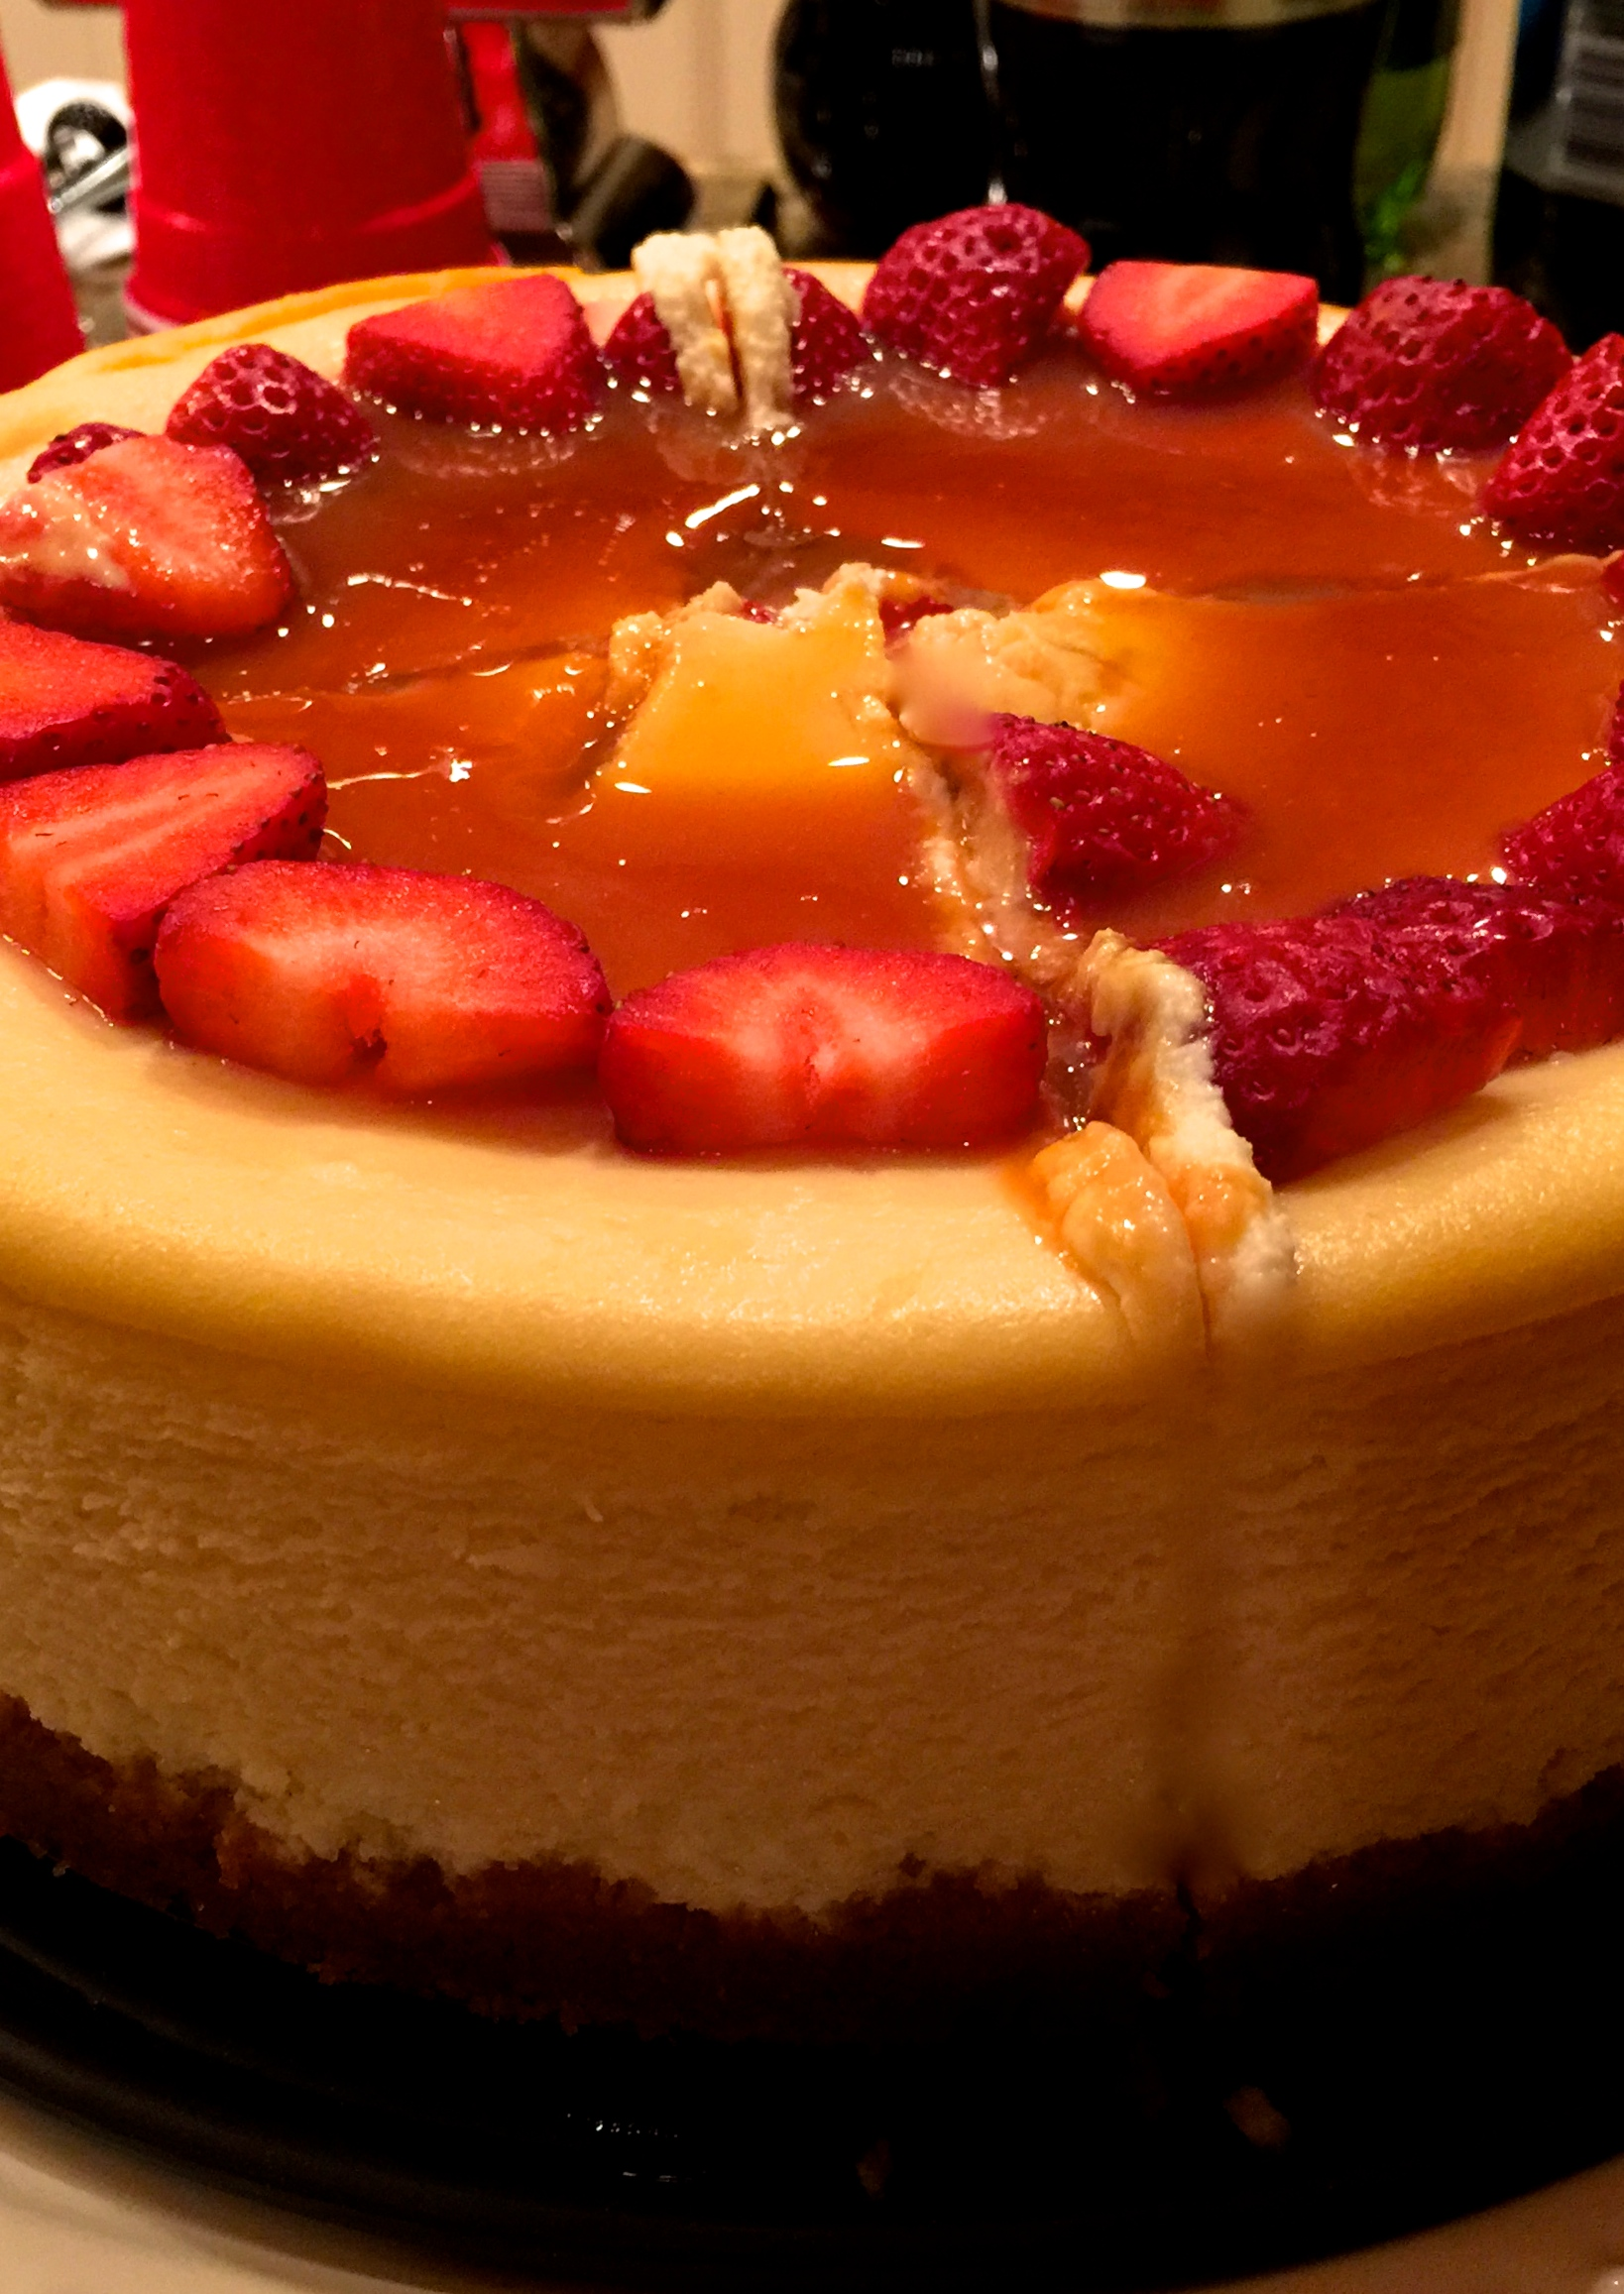 Smooth and Creamy New York Cheesecake: A Sublime Holiday Dessert!